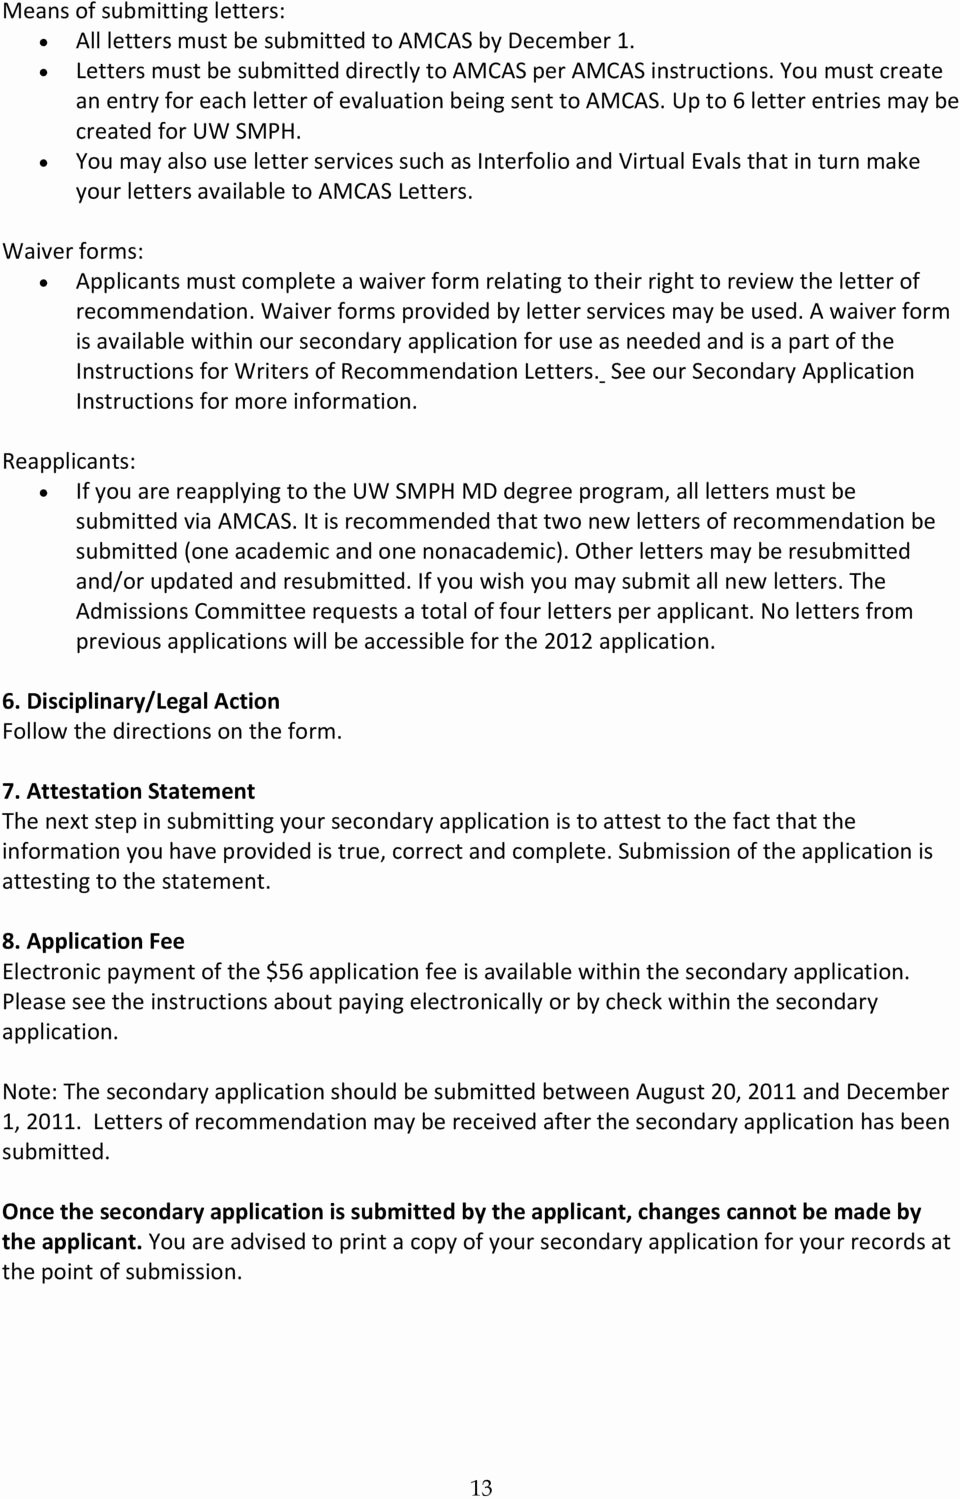 Interfolio Letter Of Recommendation Inspirational University Of Wisconsin School Of Medicine and Public